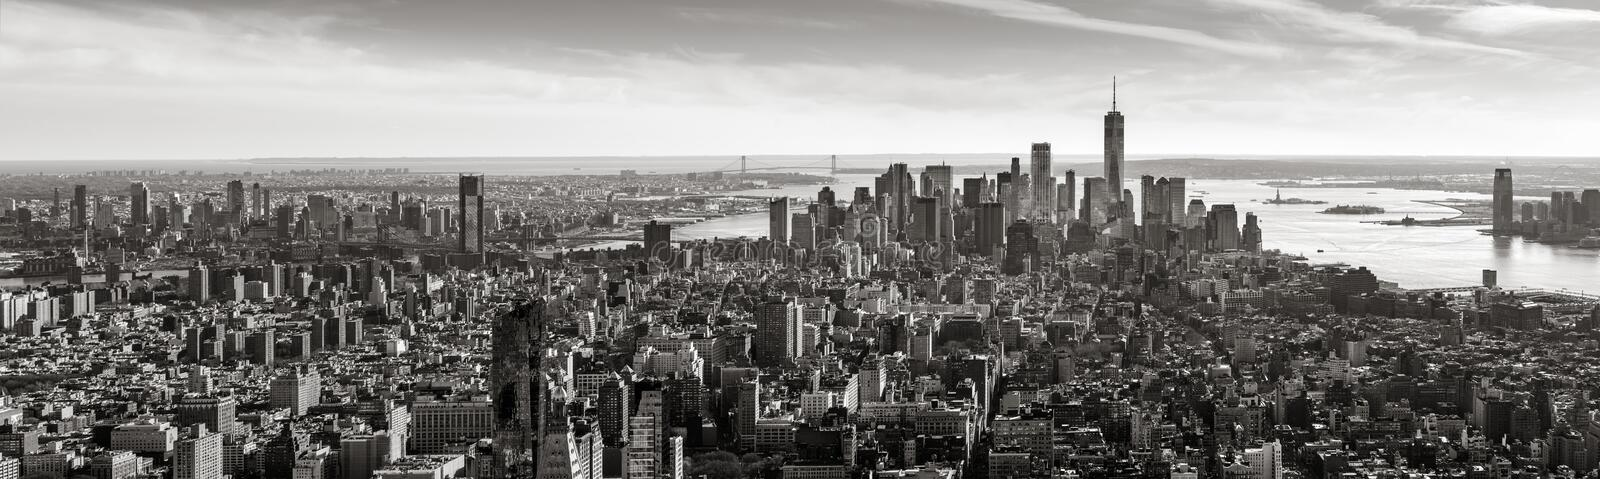 Luchtpanorama van Lower Manhattan in Zwart & Wit, de Stad van New York stock foto's